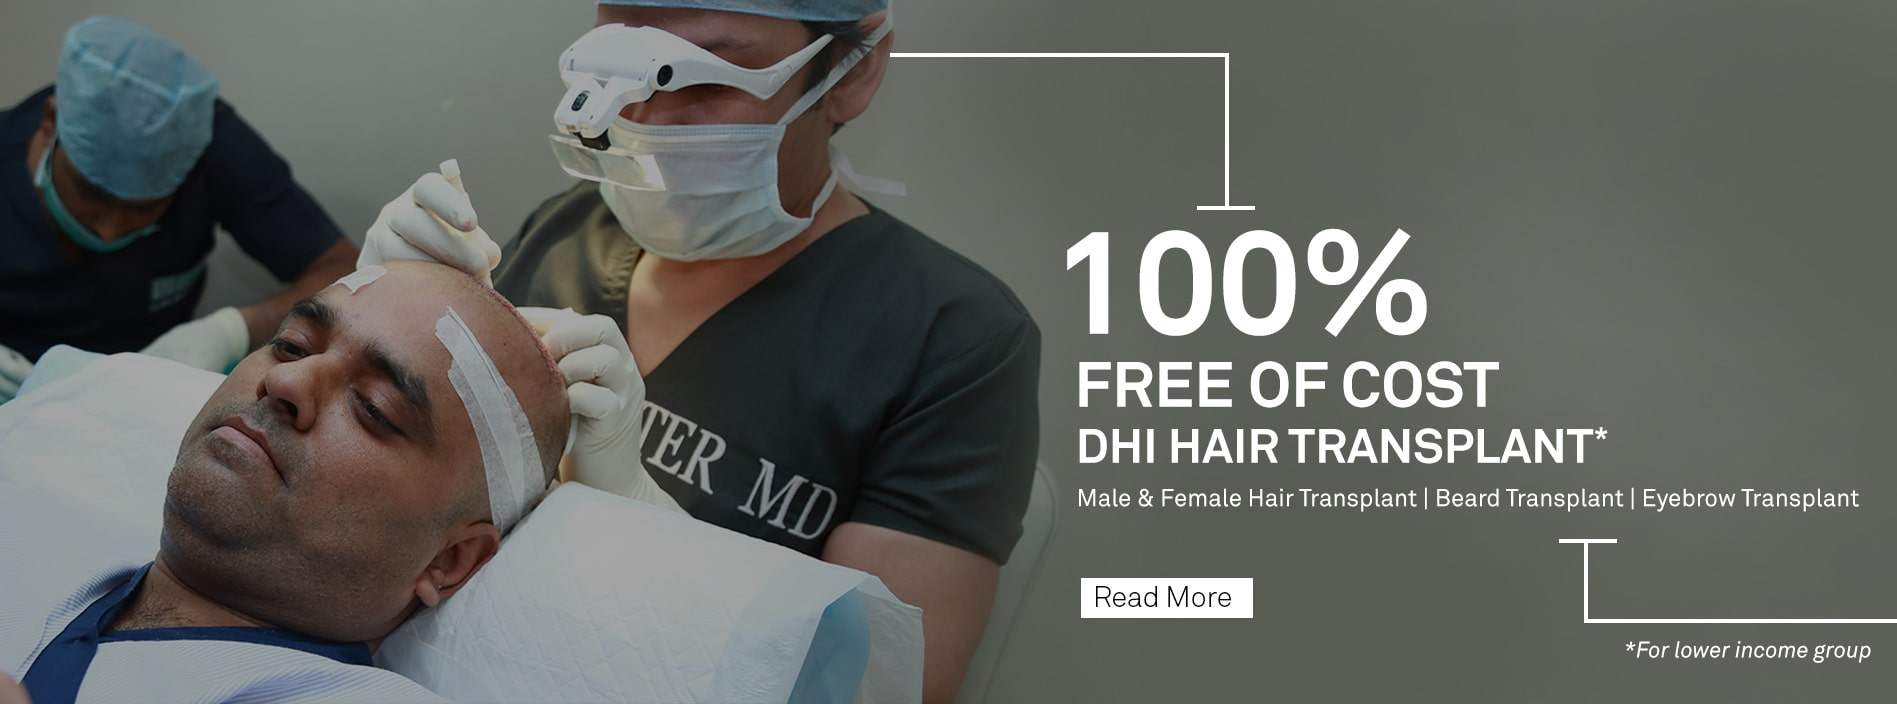 Hair Transplant: Trusted & Best Hair Transplant in India